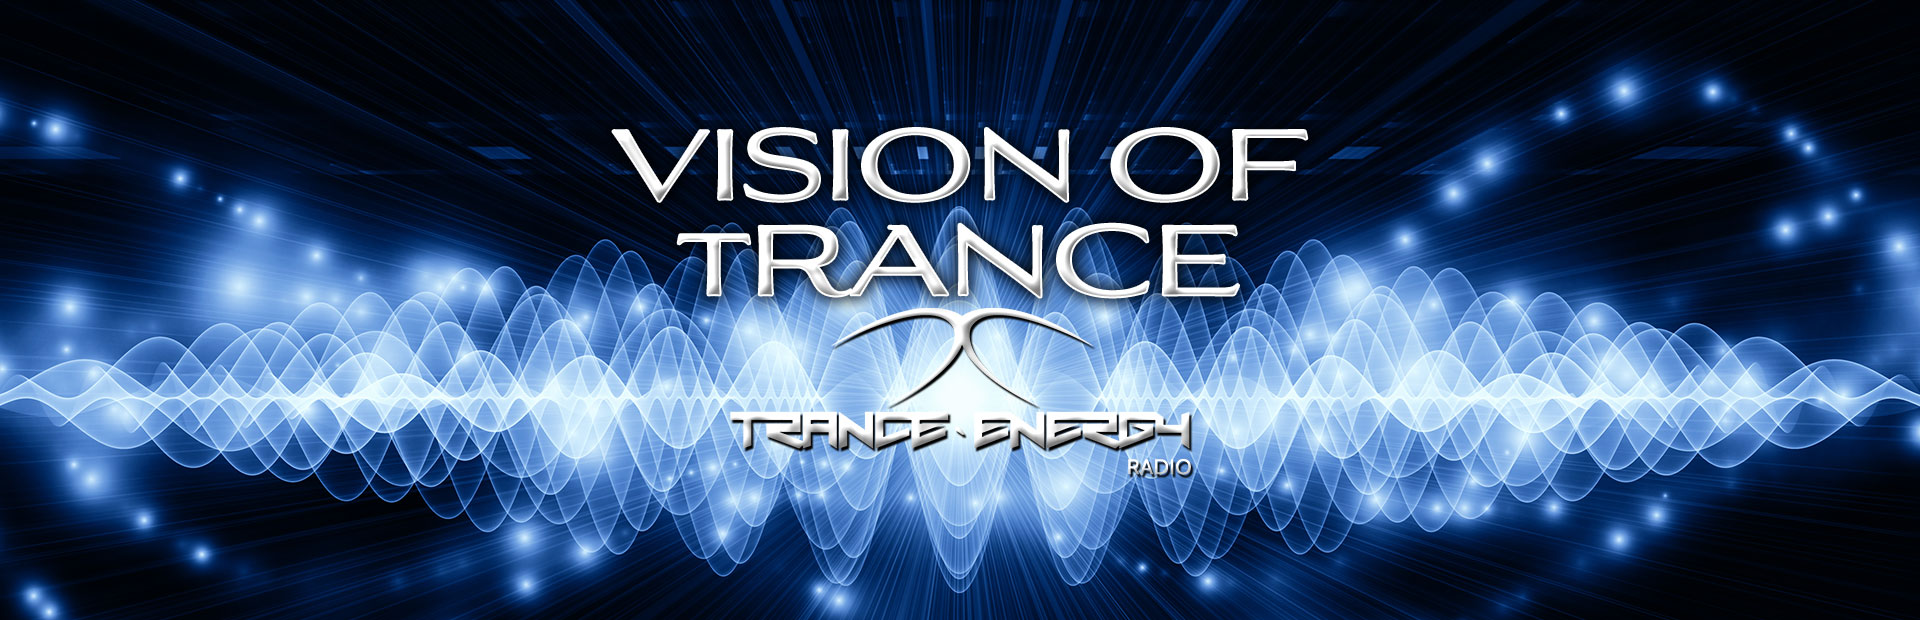 Vision of trance